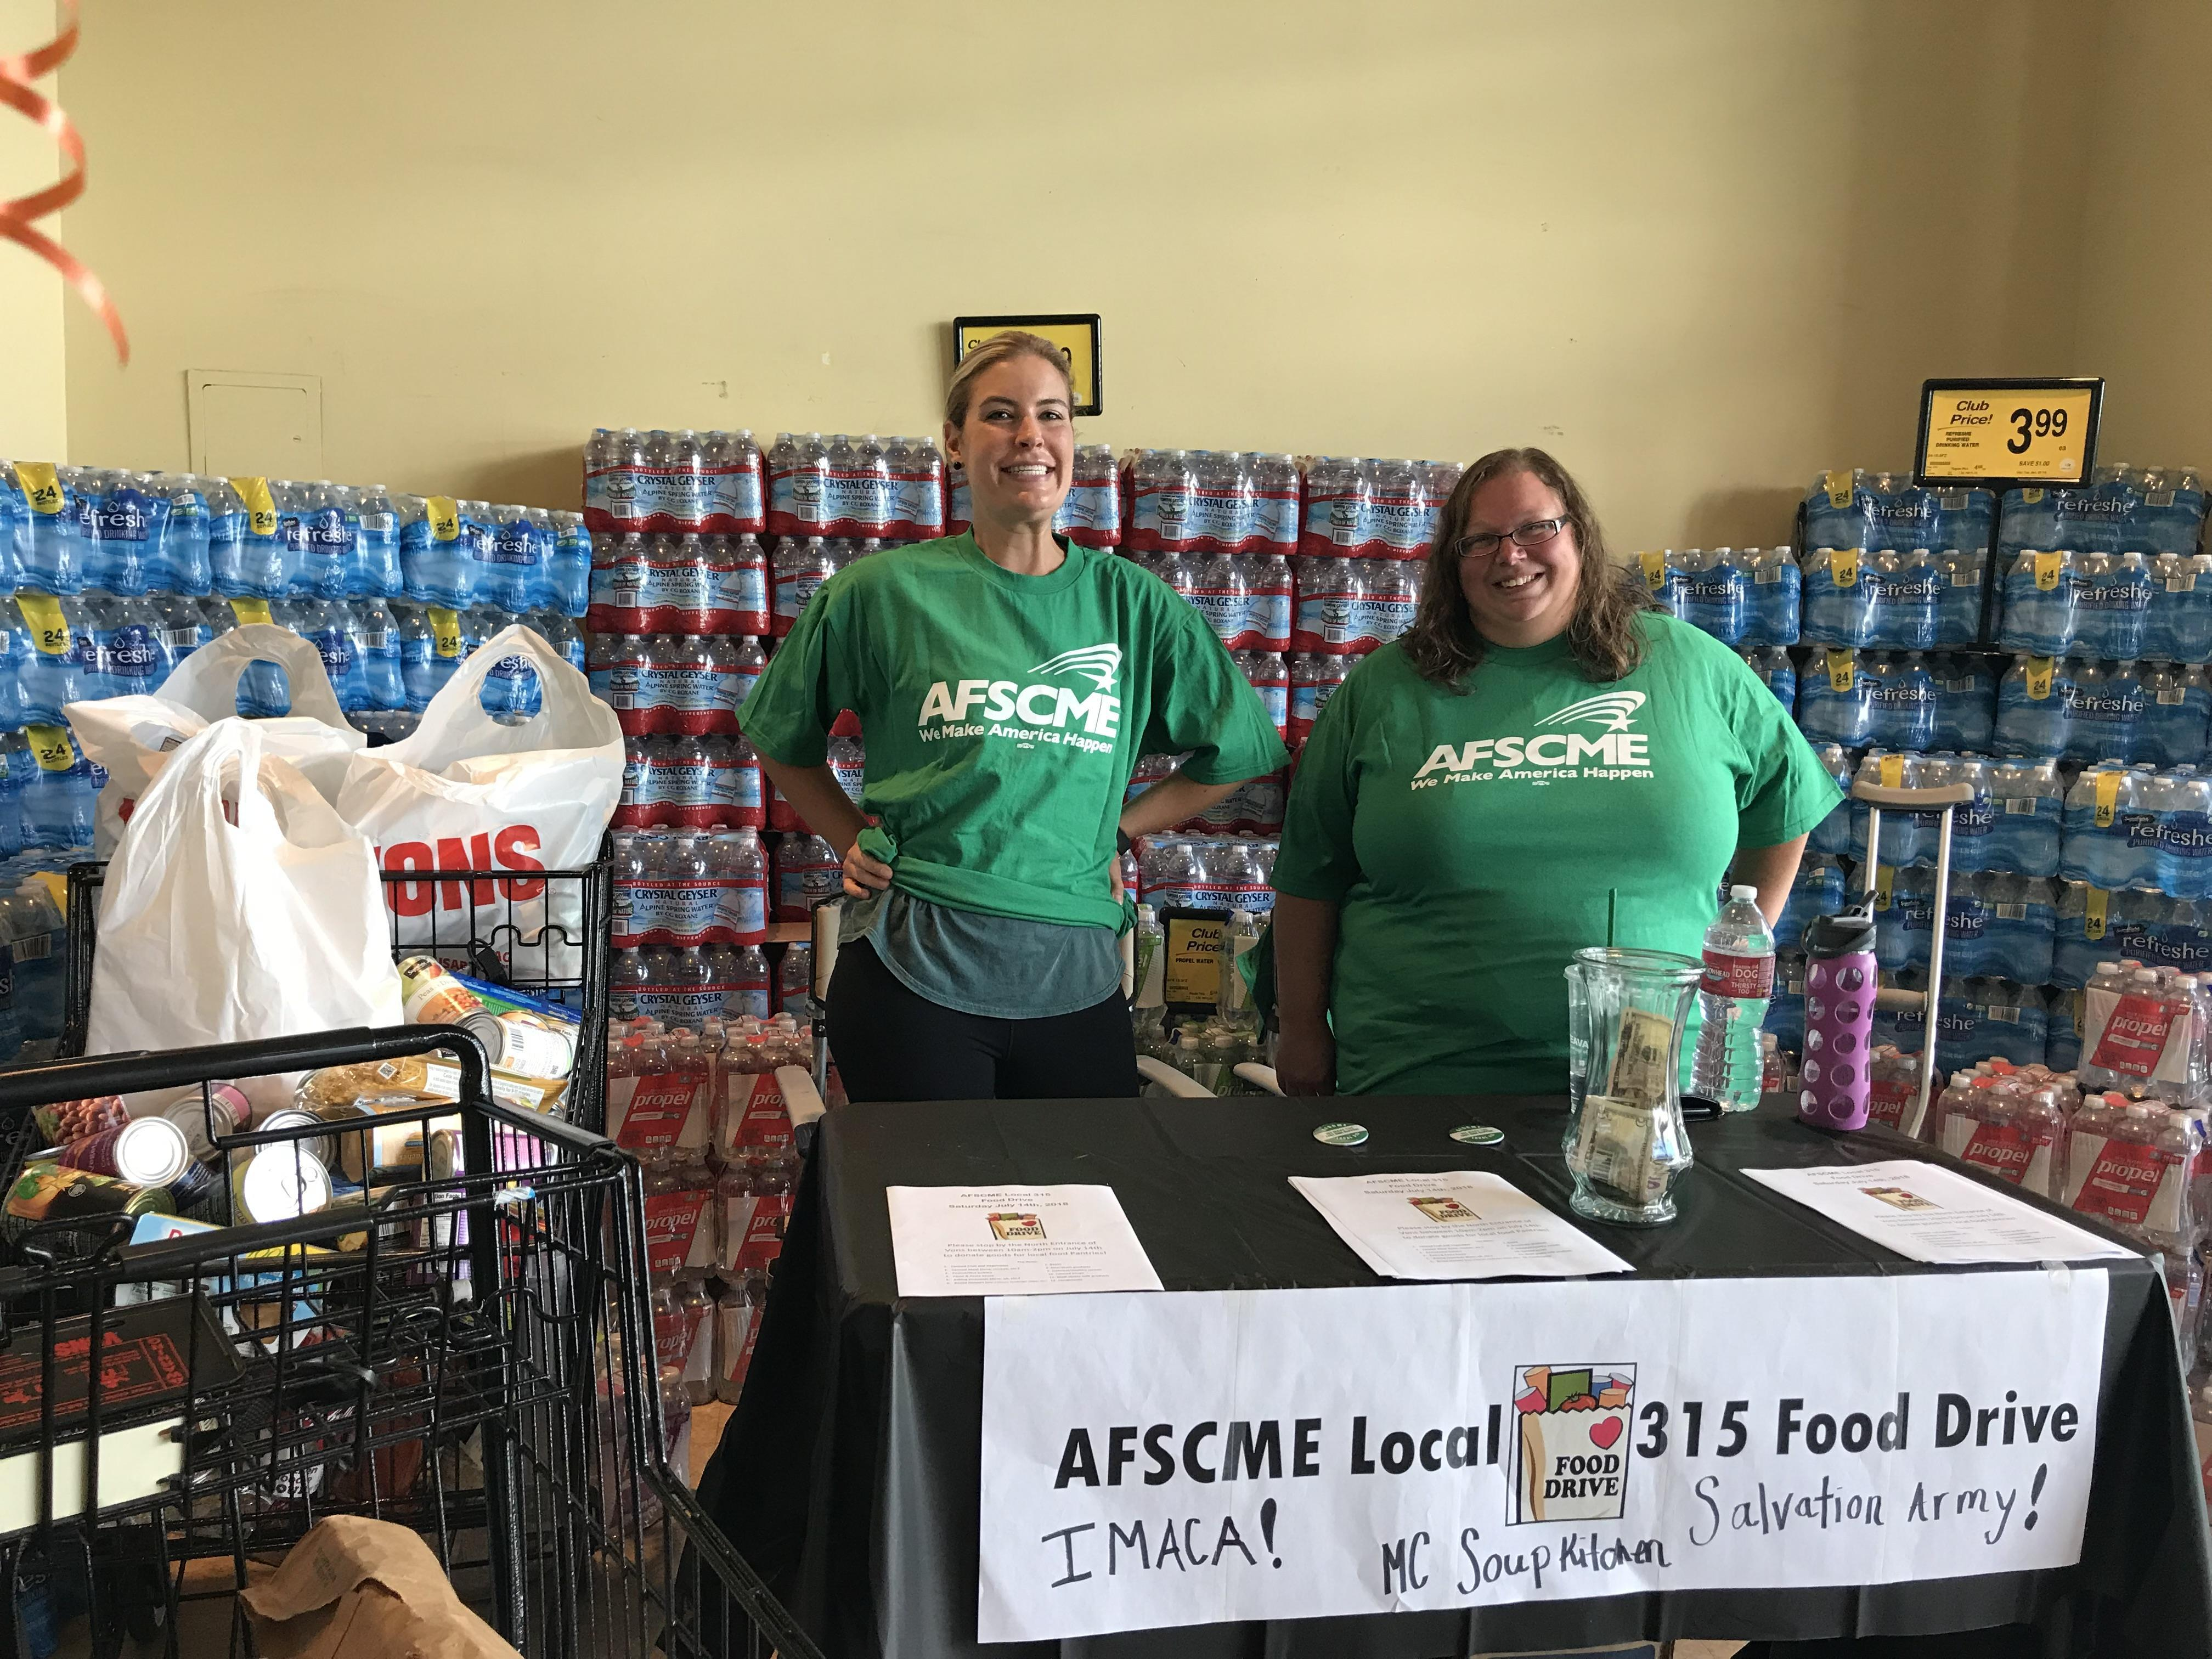 AFSCME Local 315 members Eryn Clark and Laura Bourelle work the booth at the local's food drive in Bishop.